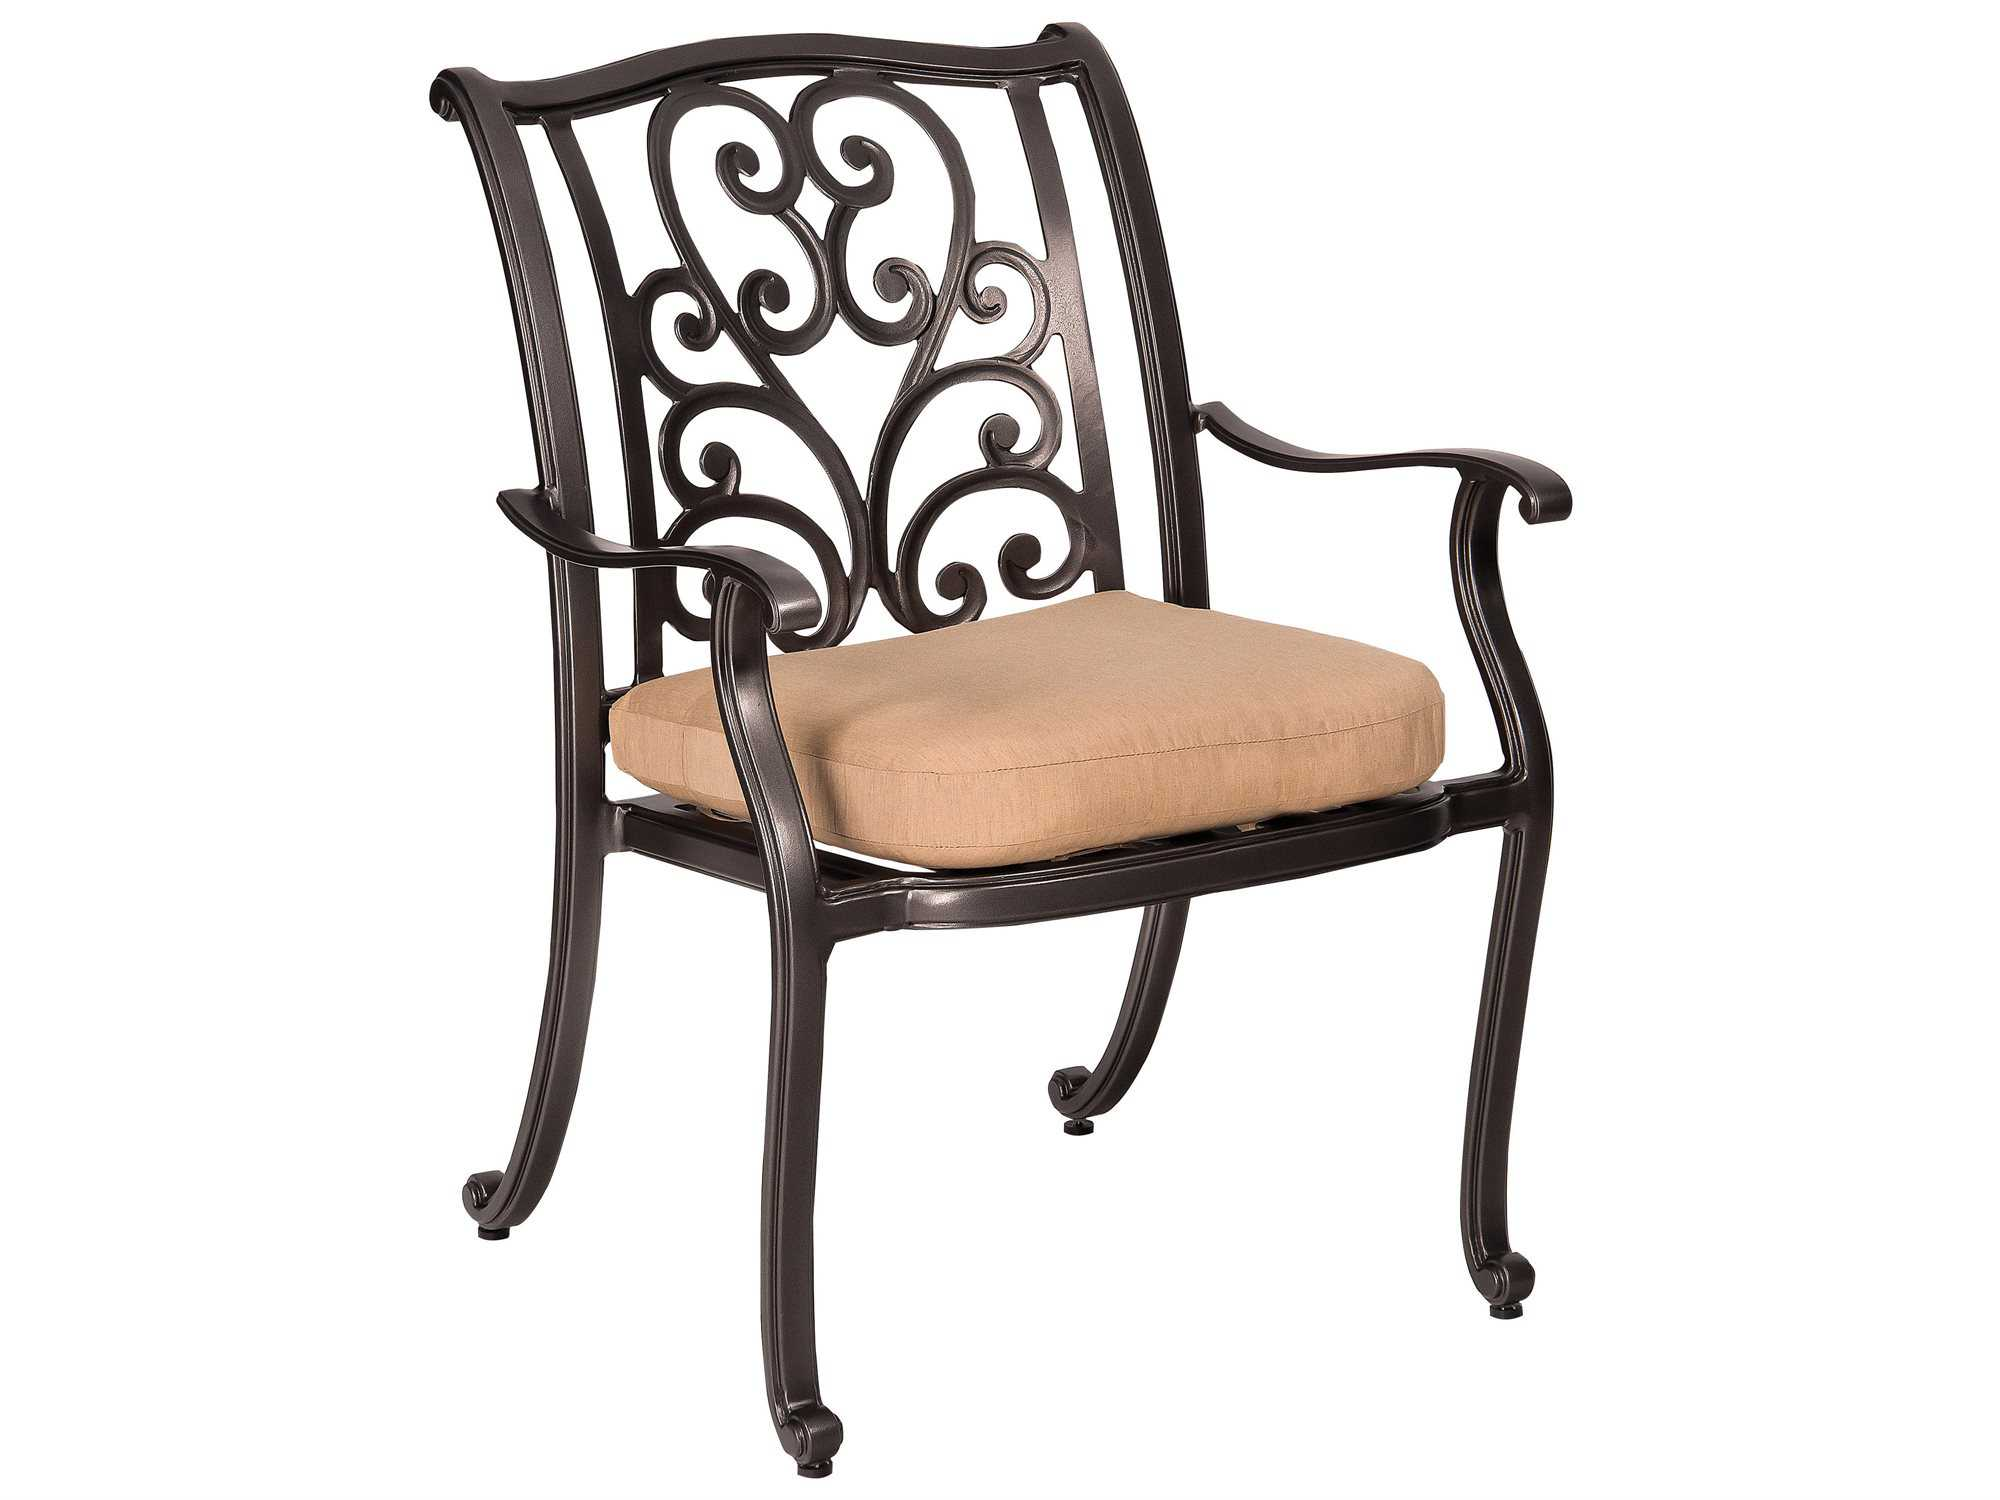 Marvelous photograph of  Dining Arm Chair/Swivel Rocking Dining Arm Chair Replacement Cushions with #995D32 color and 2000x1500 pixels